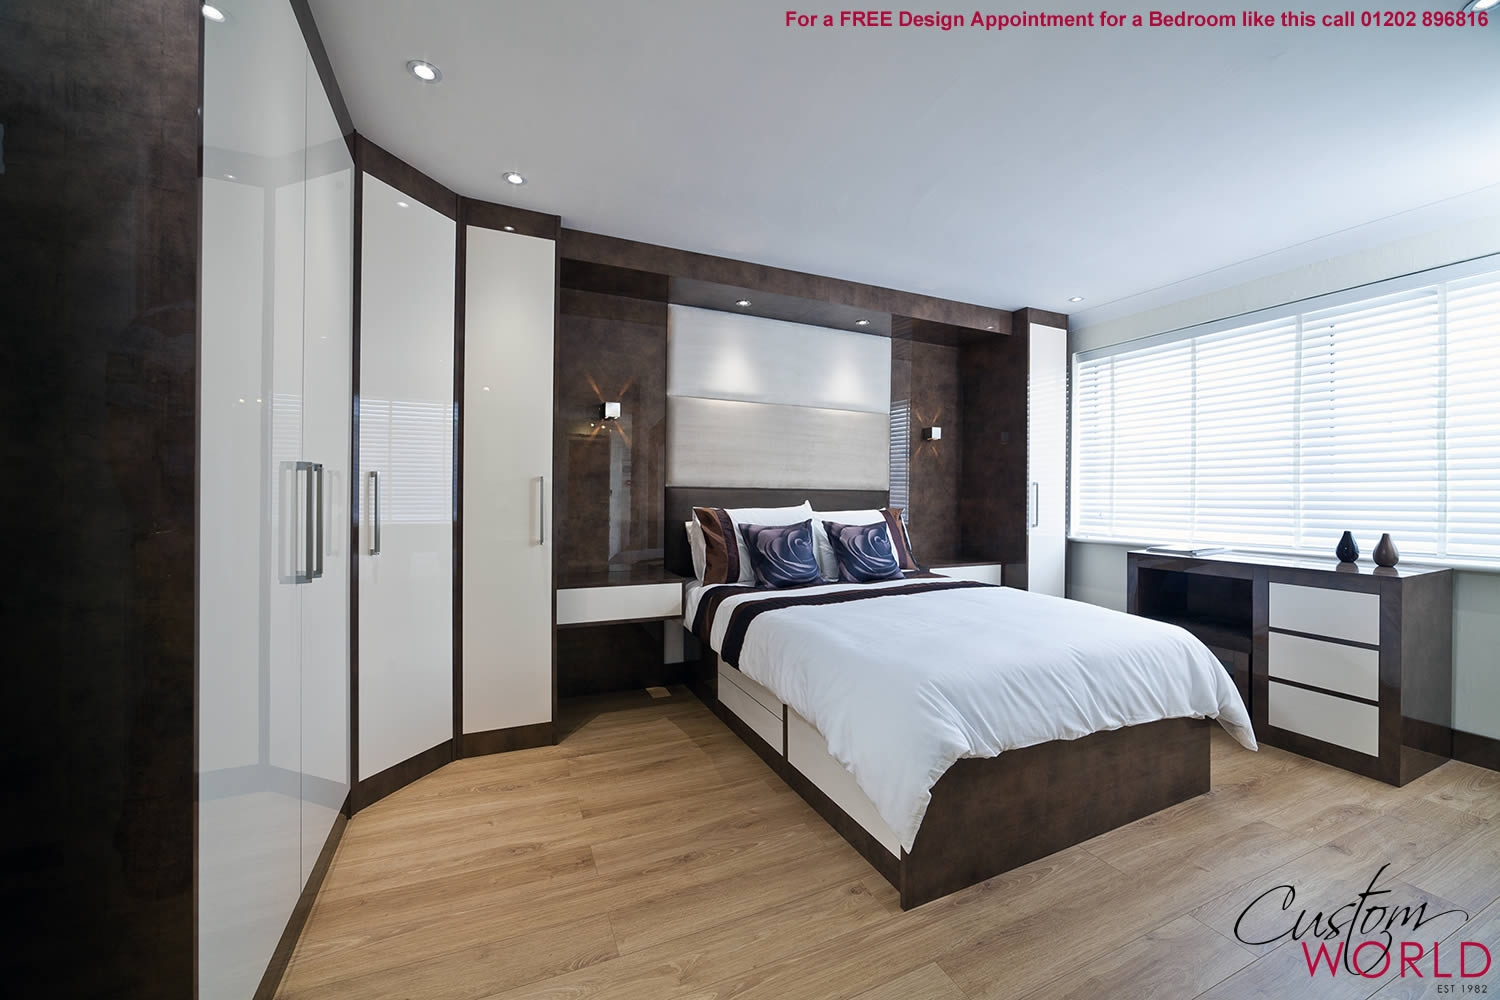 Fitted Furniture Blandford Forum Dorset Sliding Door Wardrobes Pertaining To Bespoke Built In Furniture (View 13 of 15)